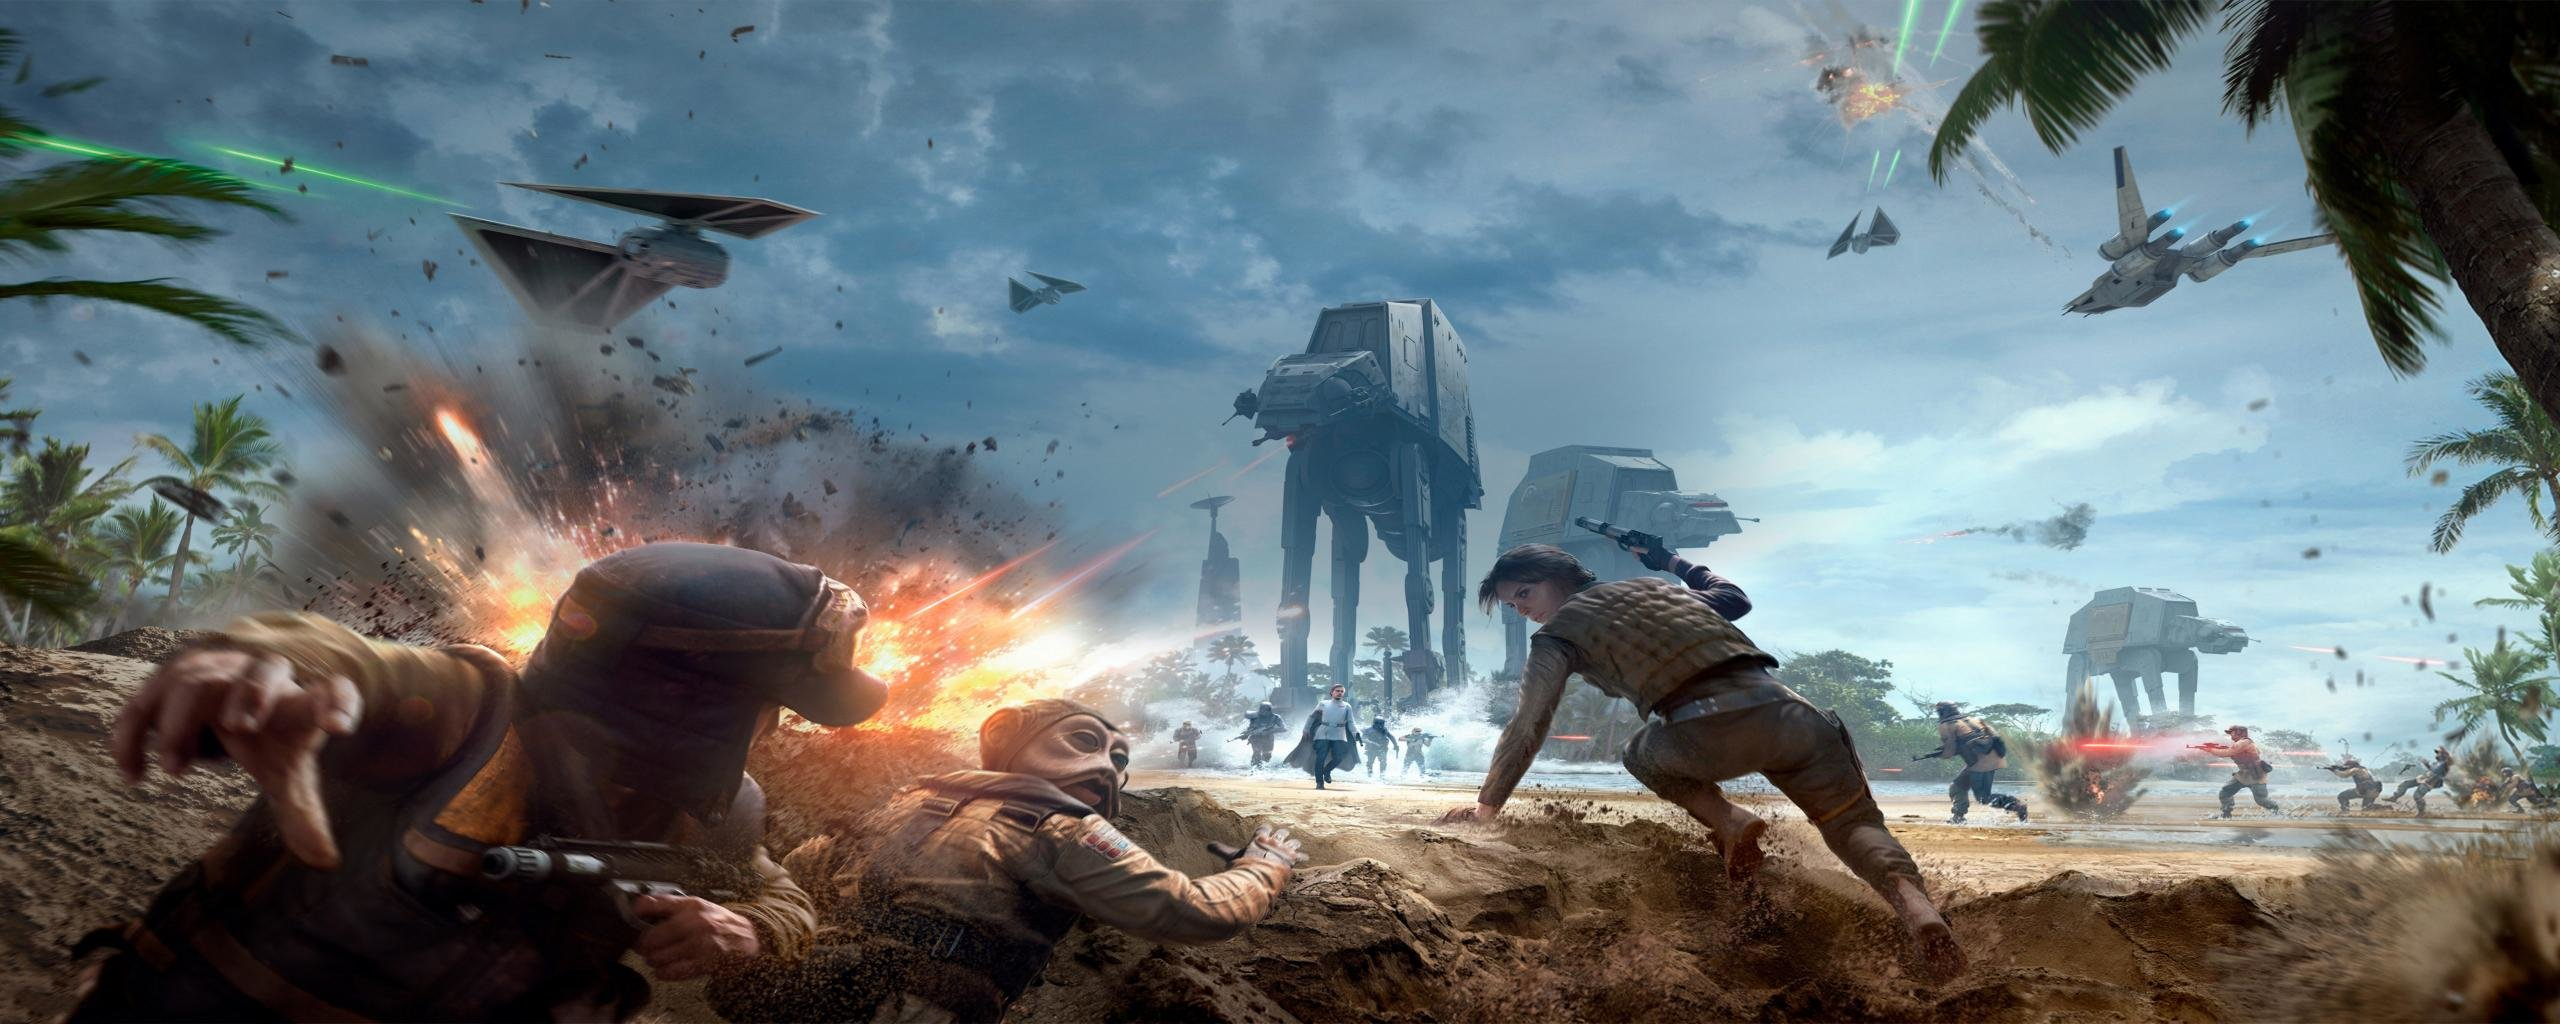 Dual Monitor Star Wars Battlefront Wallpapers, HD Backgrounds